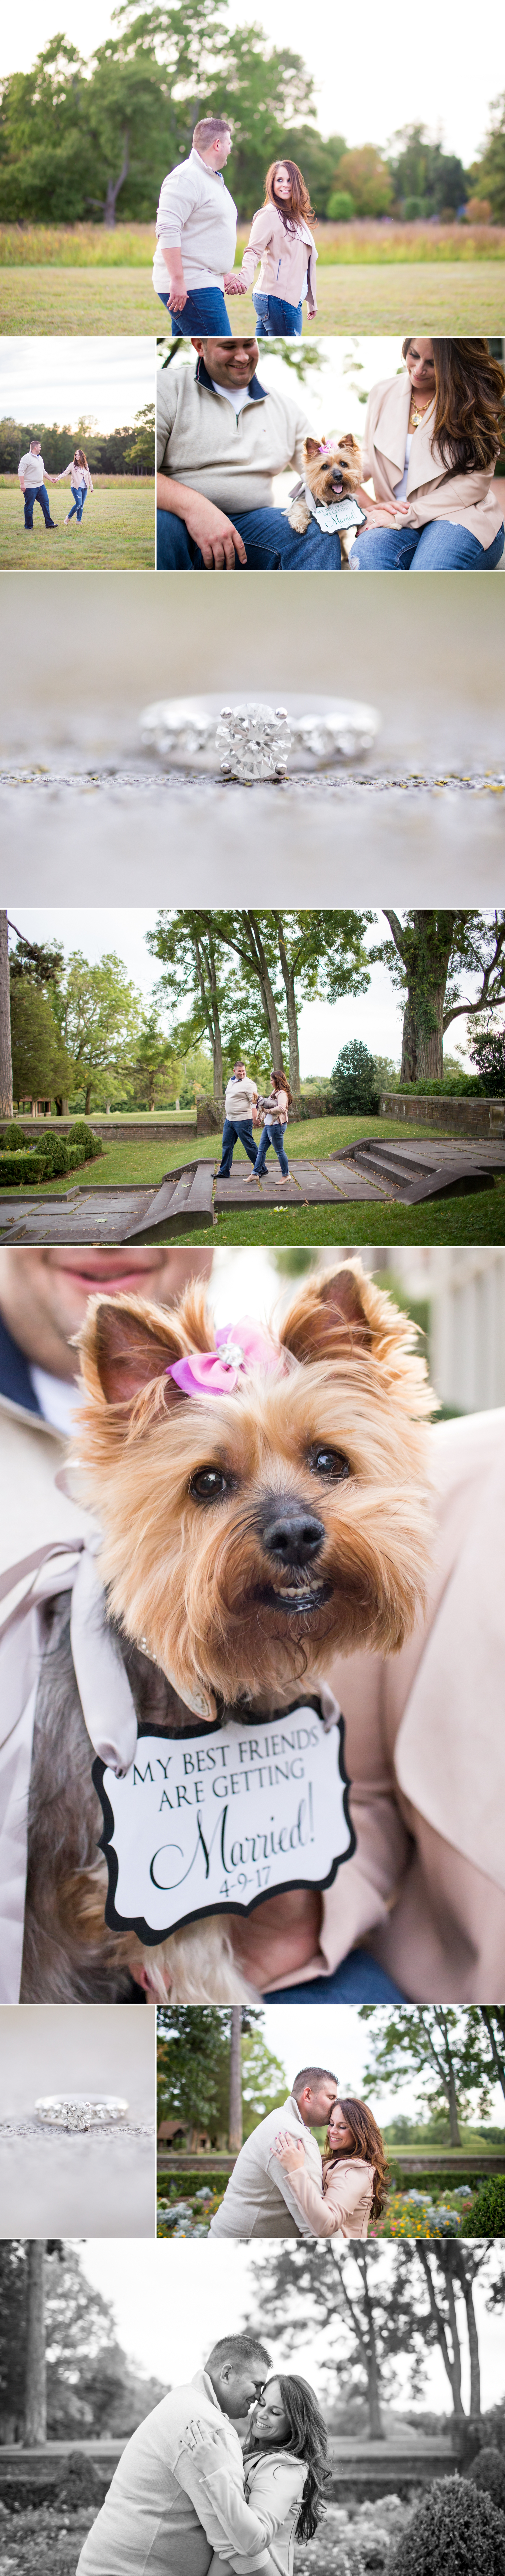 New Canaan, CT Engagement Session at Waveny Park | CT, NYC + Destination Luxury Wedding + Engagement Photographer | Shaina Lee Photography